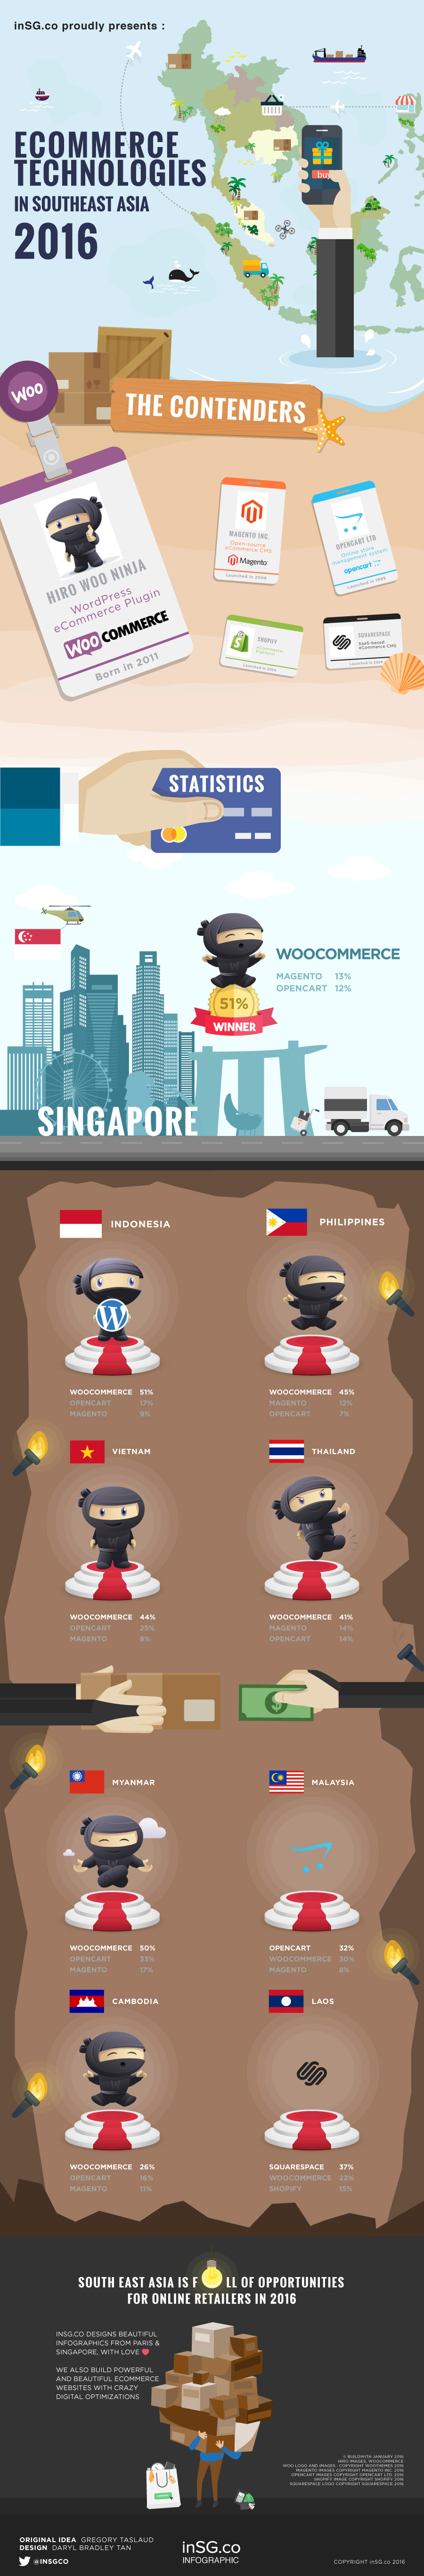 infographic ecommerce singapore southeast asia